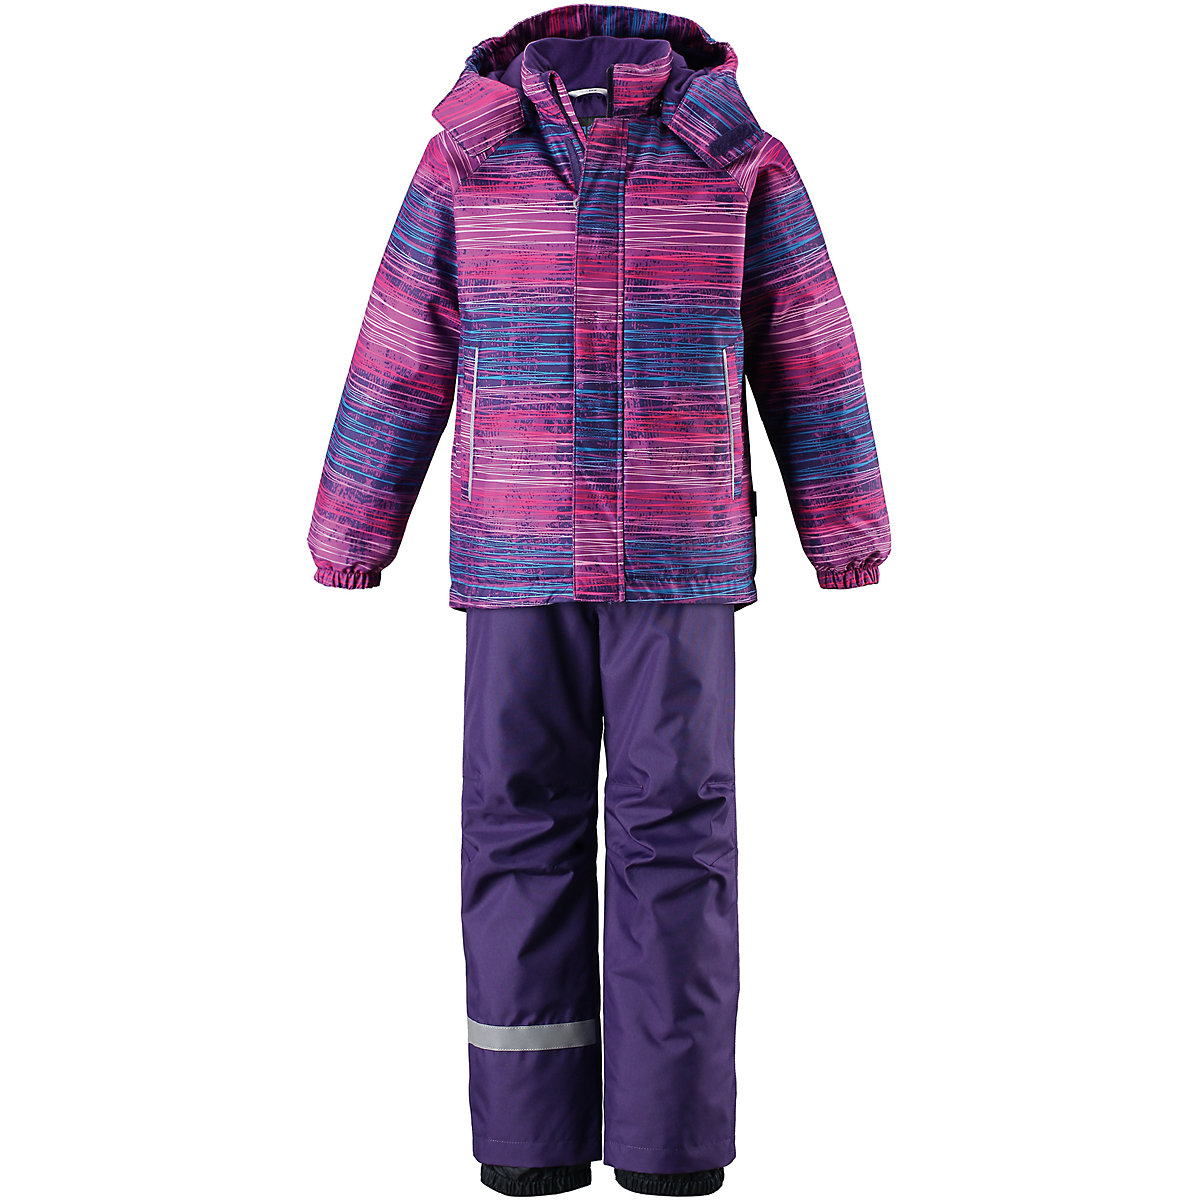 Children's Sets LASSIE for girls 8632706 Winter Track Suit Kids Children clothes Warm children s sets lassie for girls 8631960 winter track suit kids children clothes warm